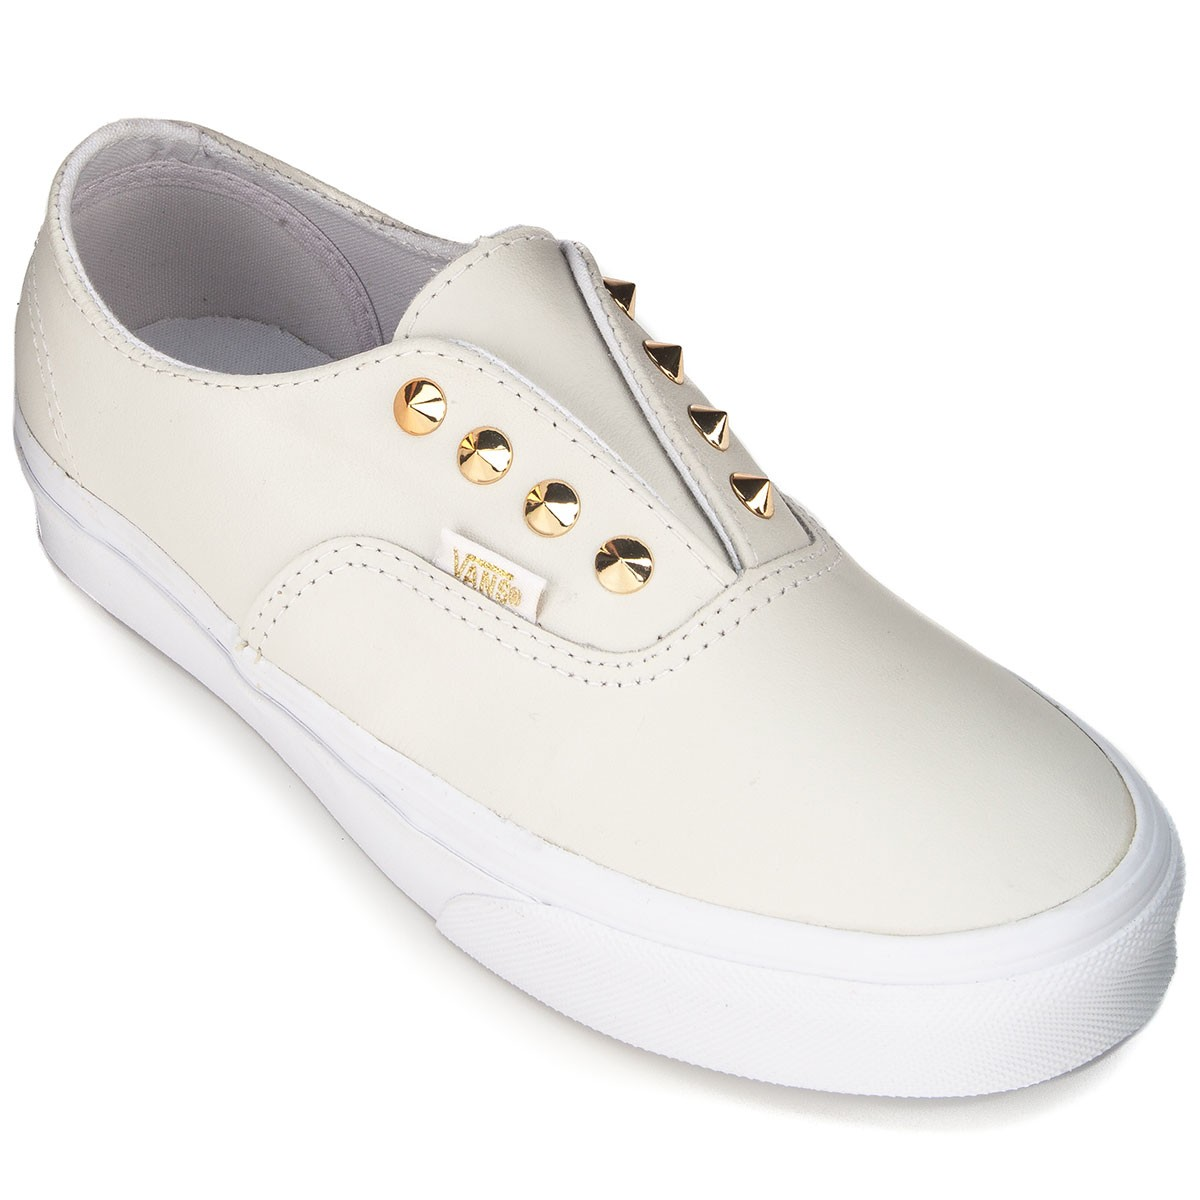 wholesale outlet e96e3 cc0f8 white leather vans authentics ... f879bc0fb